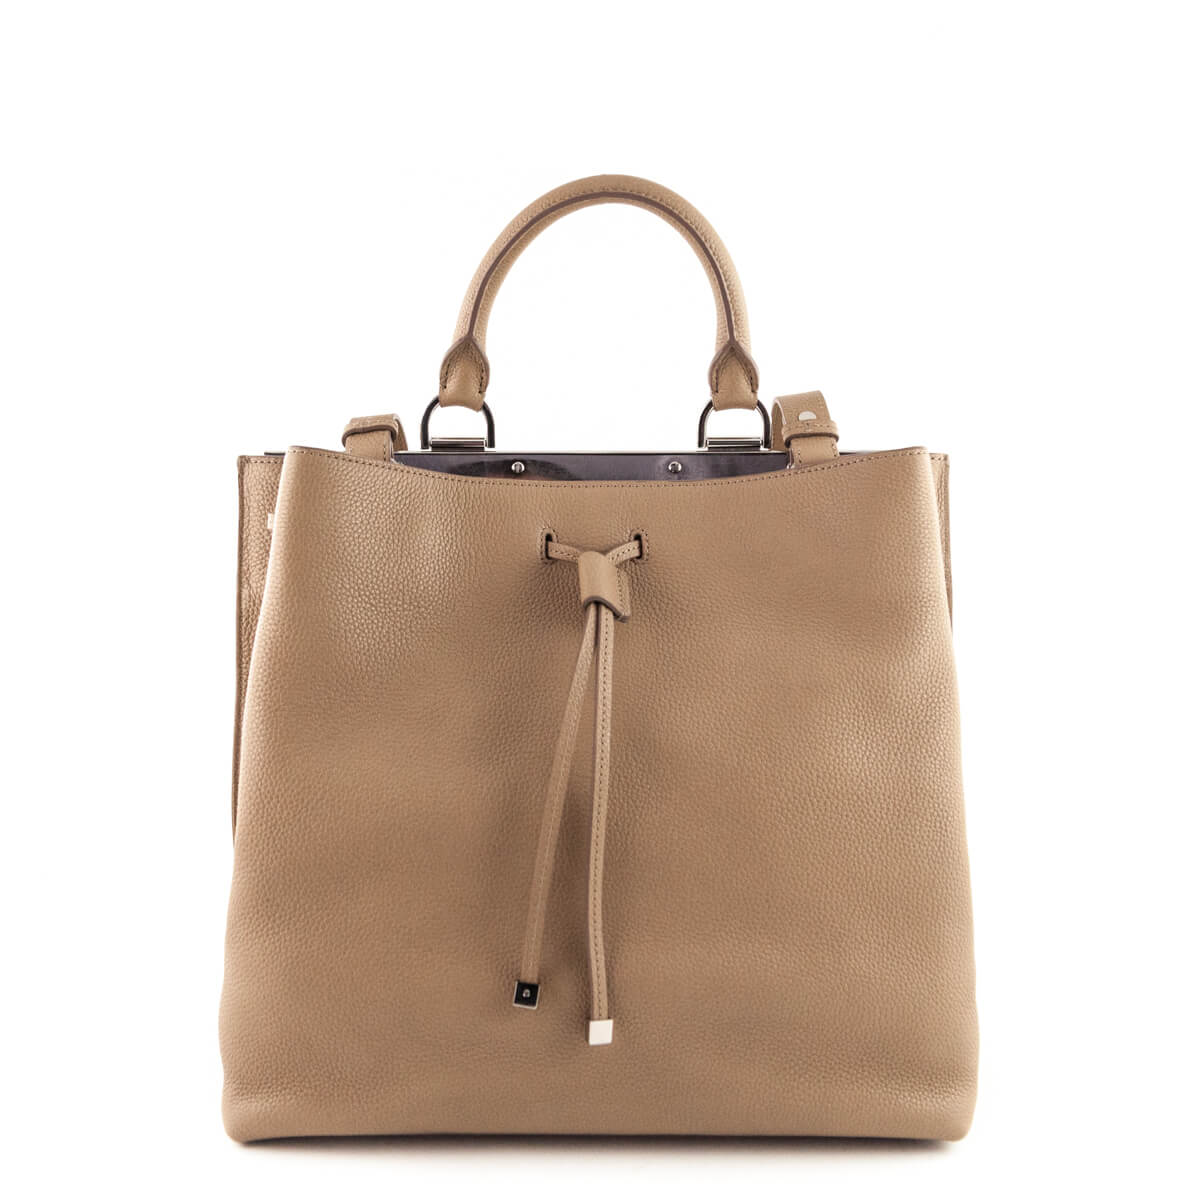 37b3c867faa7 ... Mulberry Mushroom Kensington Bag - LOVE that BAG - Preowned Authentic  Designer Handbags ...